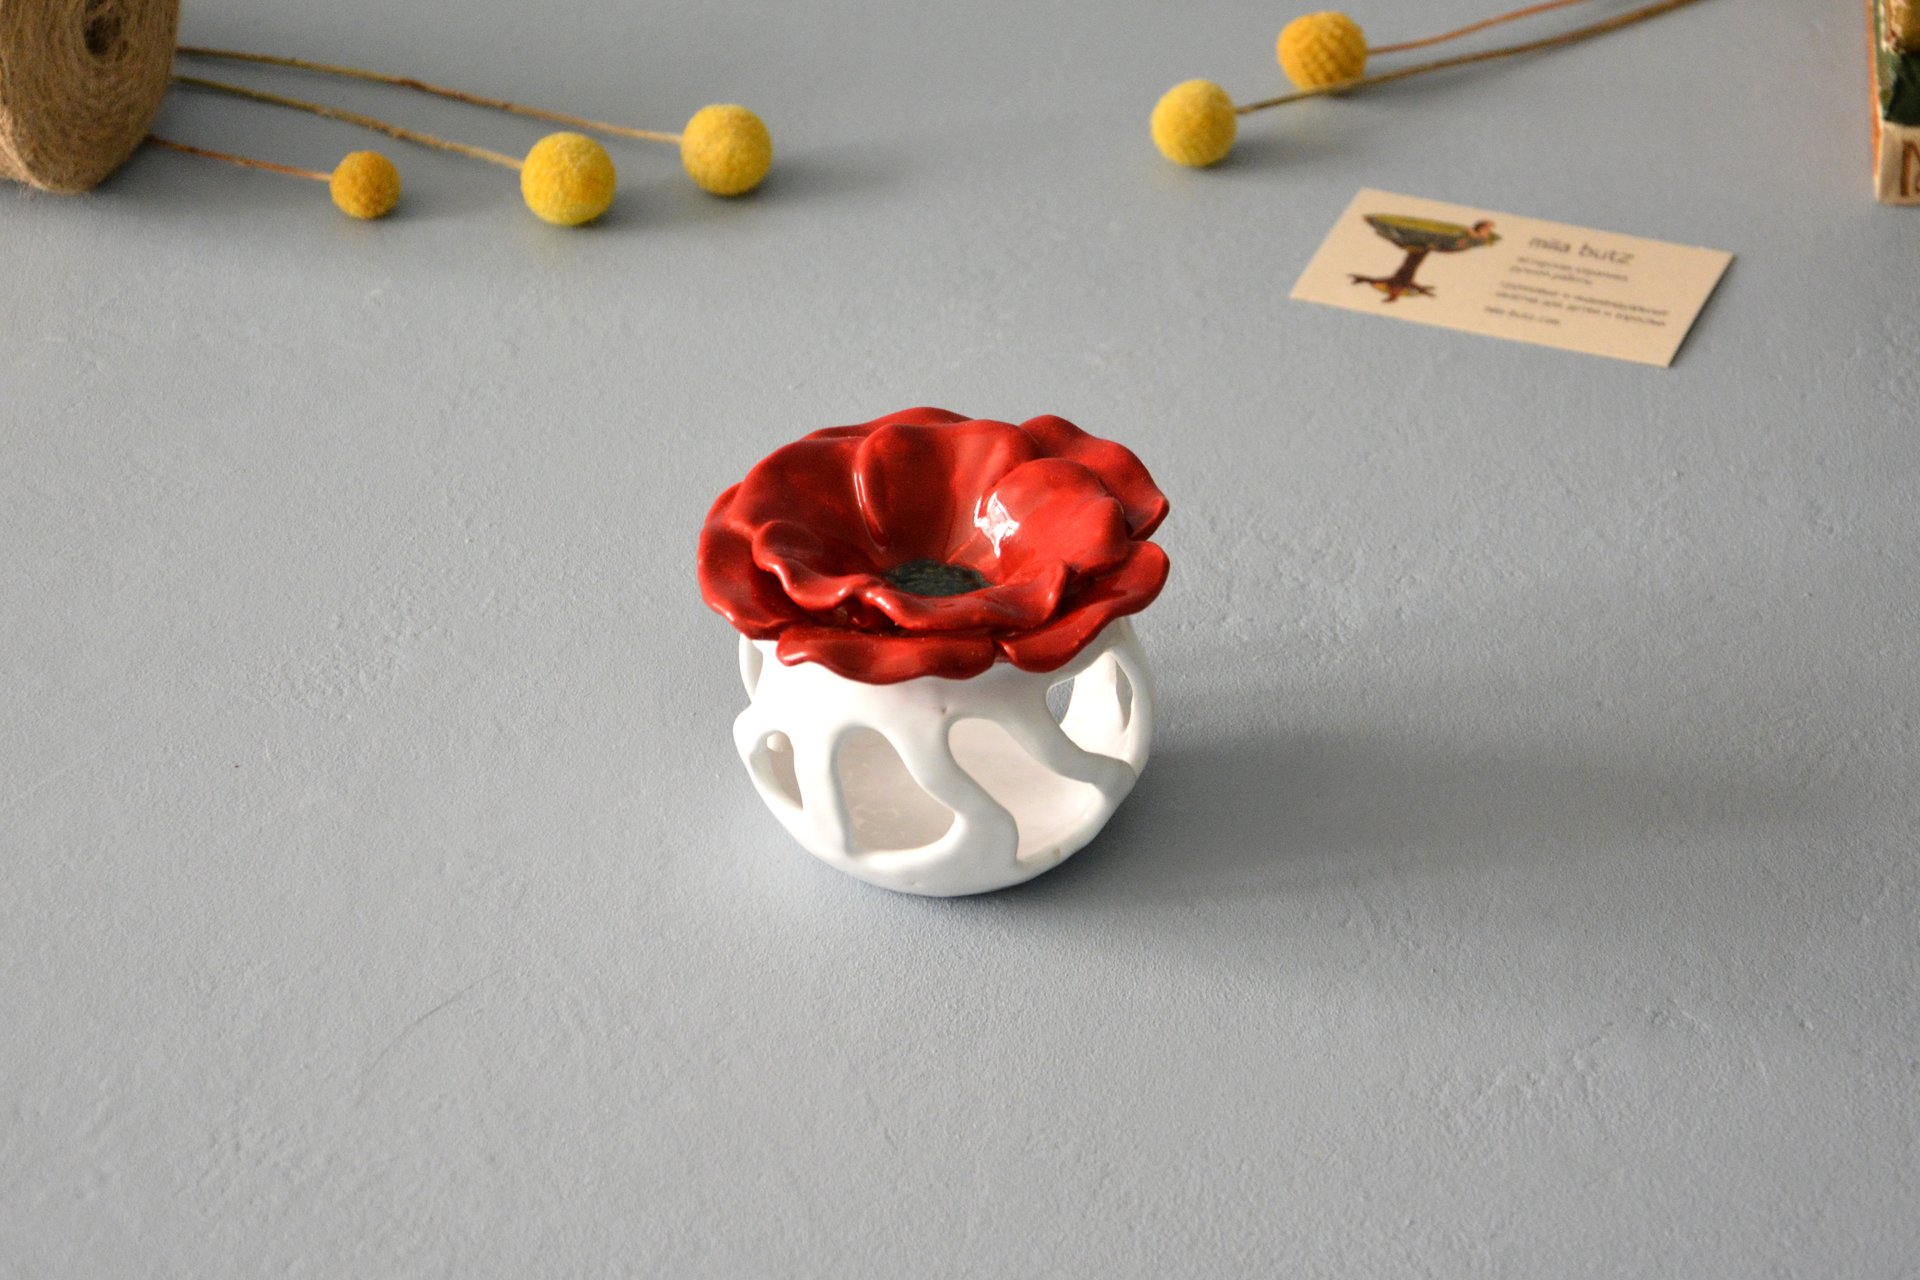 Ceramic Aroma Lamp Poppy, White with Red, color - white with red, height - 8.5 cm, diameter - 9 cm, photo 5 of 5.